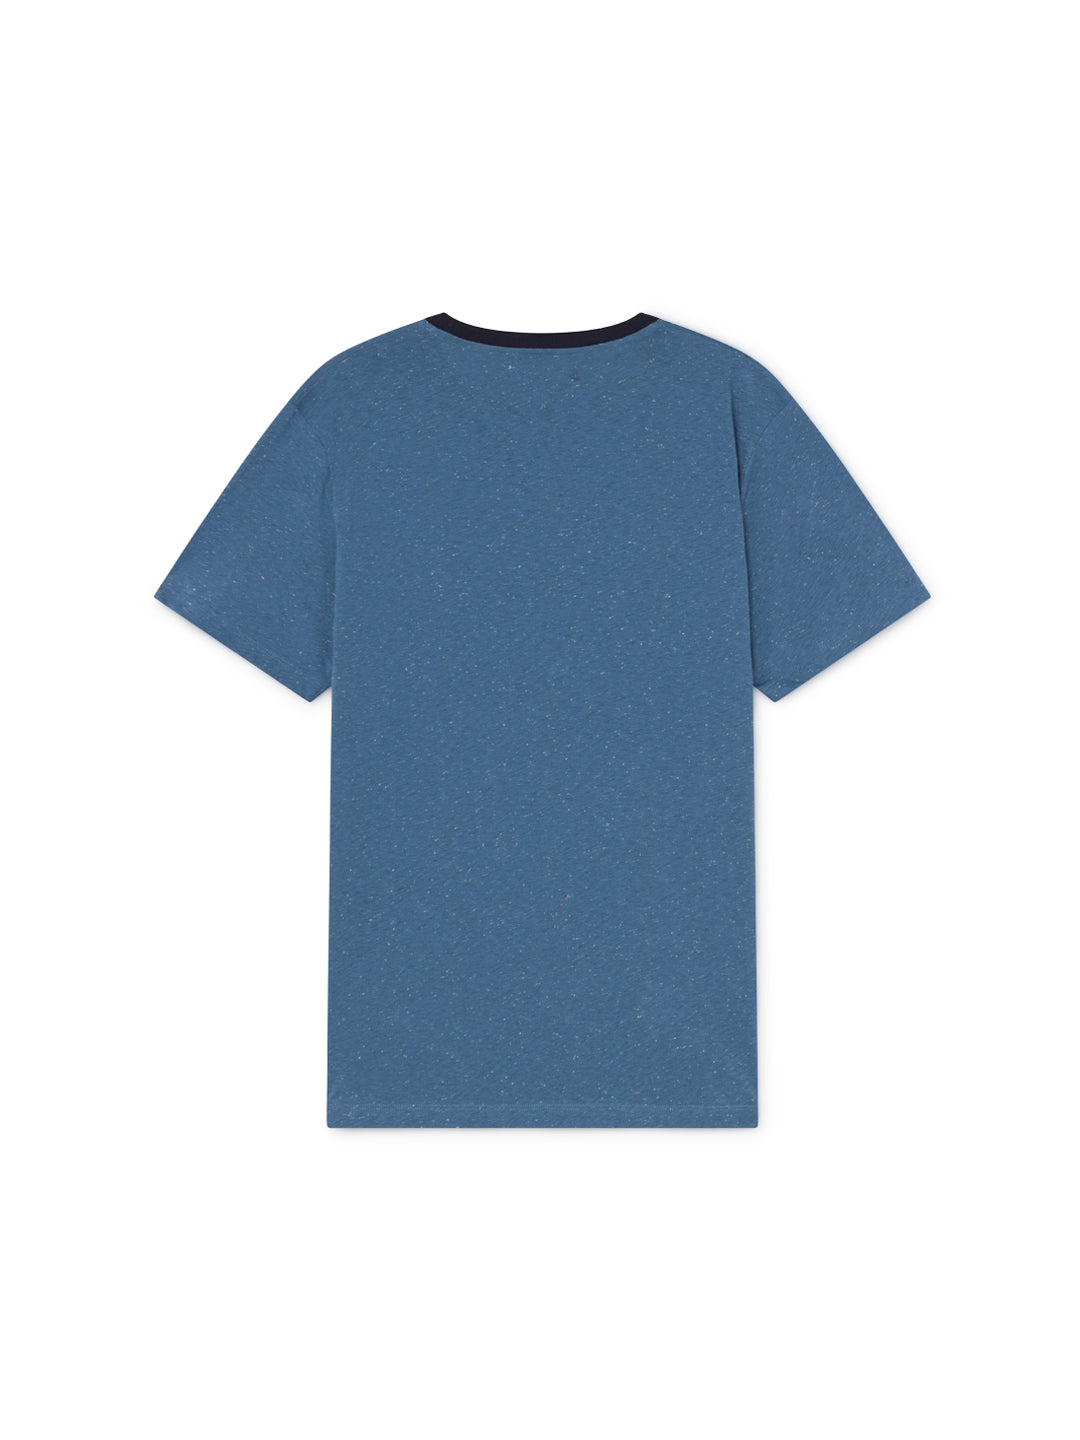 TWOTHIRDS Mens Tee: Ipun - Blue back